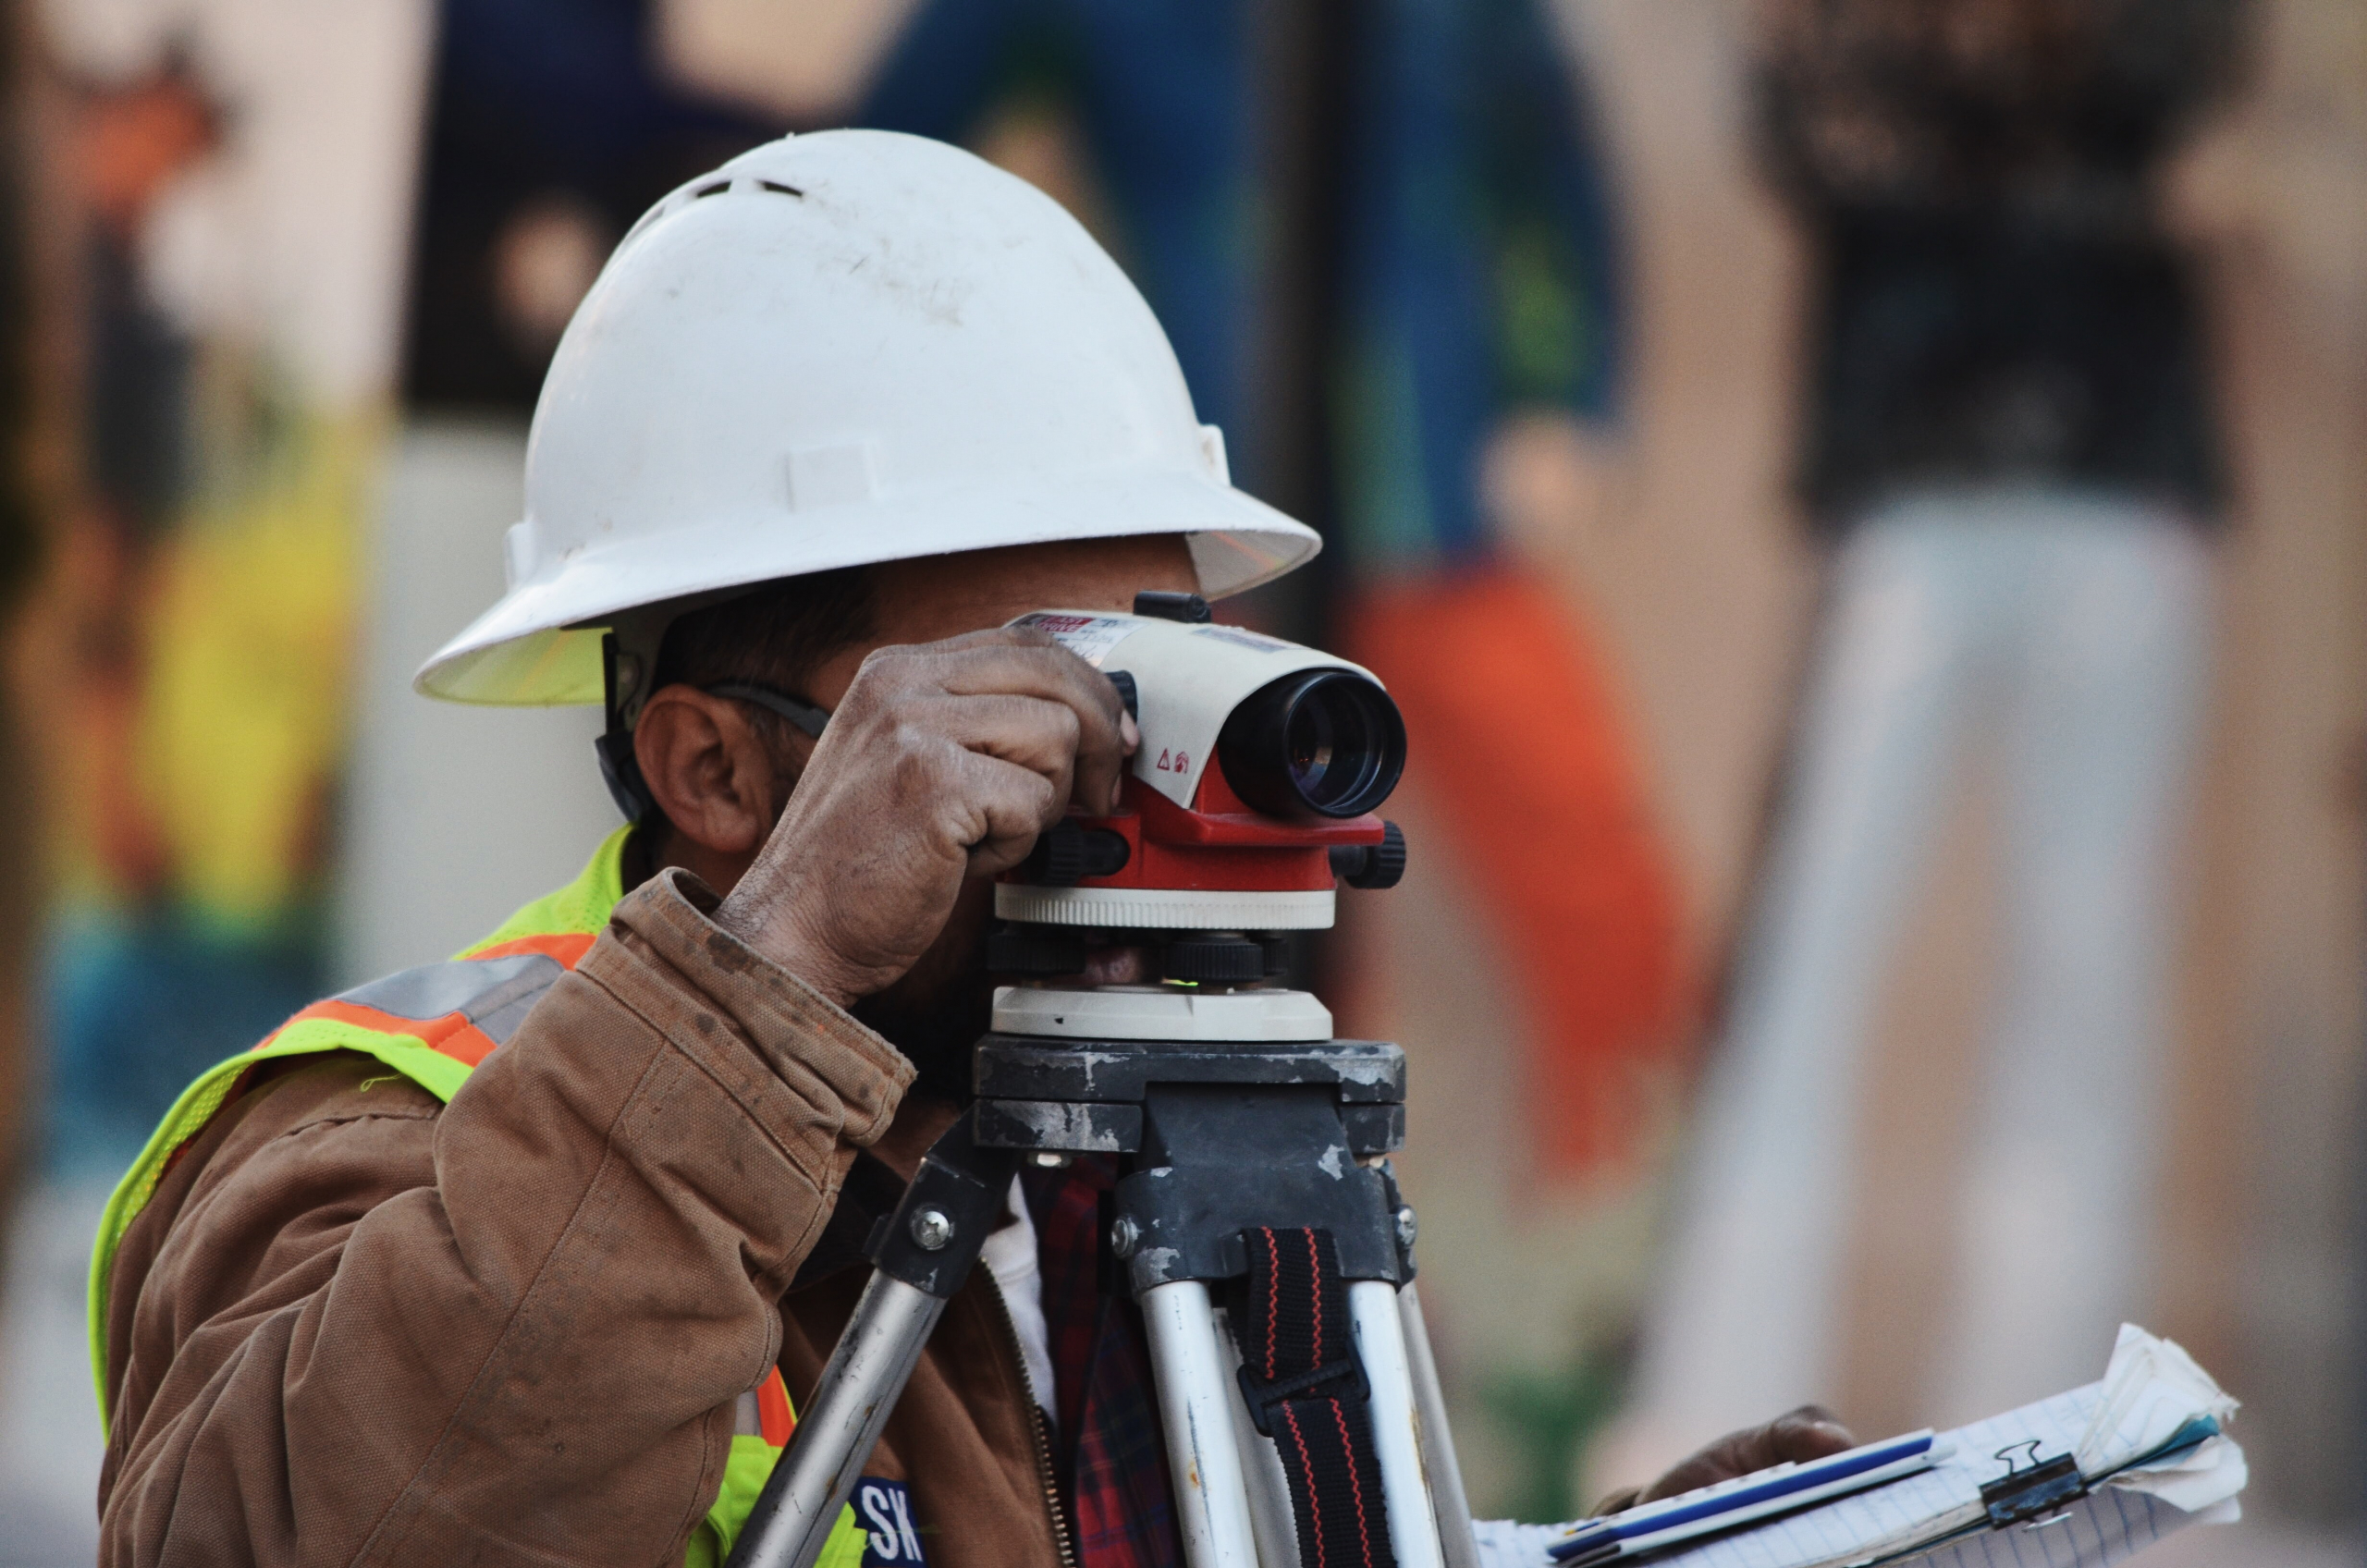 Man wearing a hard hat using a surveying device